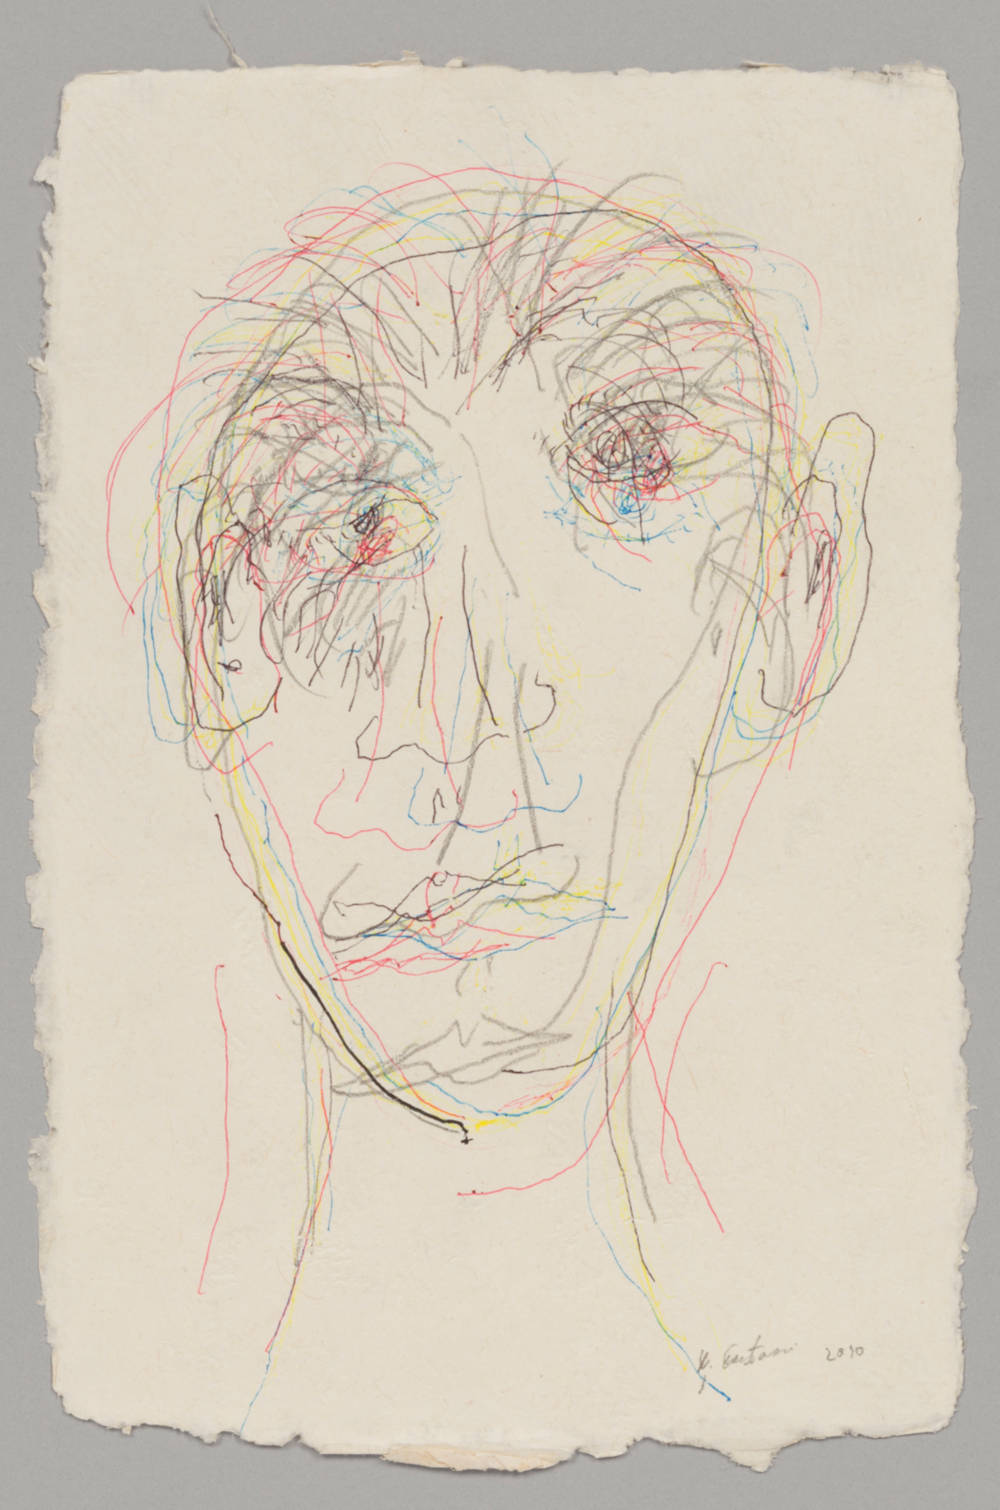 Untitled (Blind Self-Portrait)